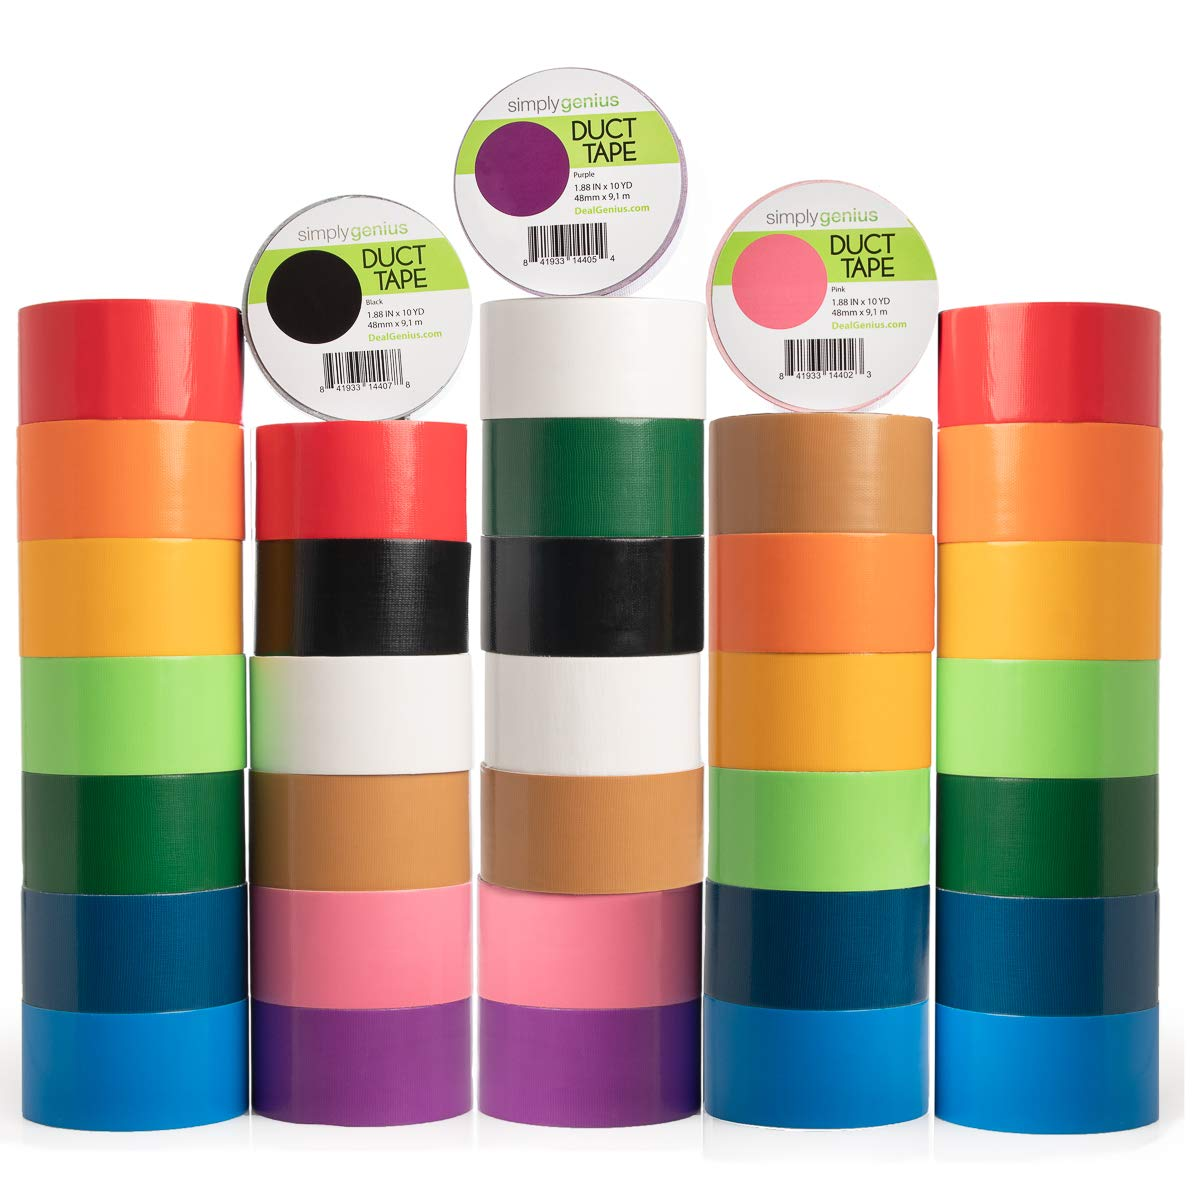 Simply Genius (36 Pack) Patterned and Colored Duct Tape Variety Pack Tape Rolls Craft Supplies for Kids Adults Patterned Duct Tape Colors by Simply Genius